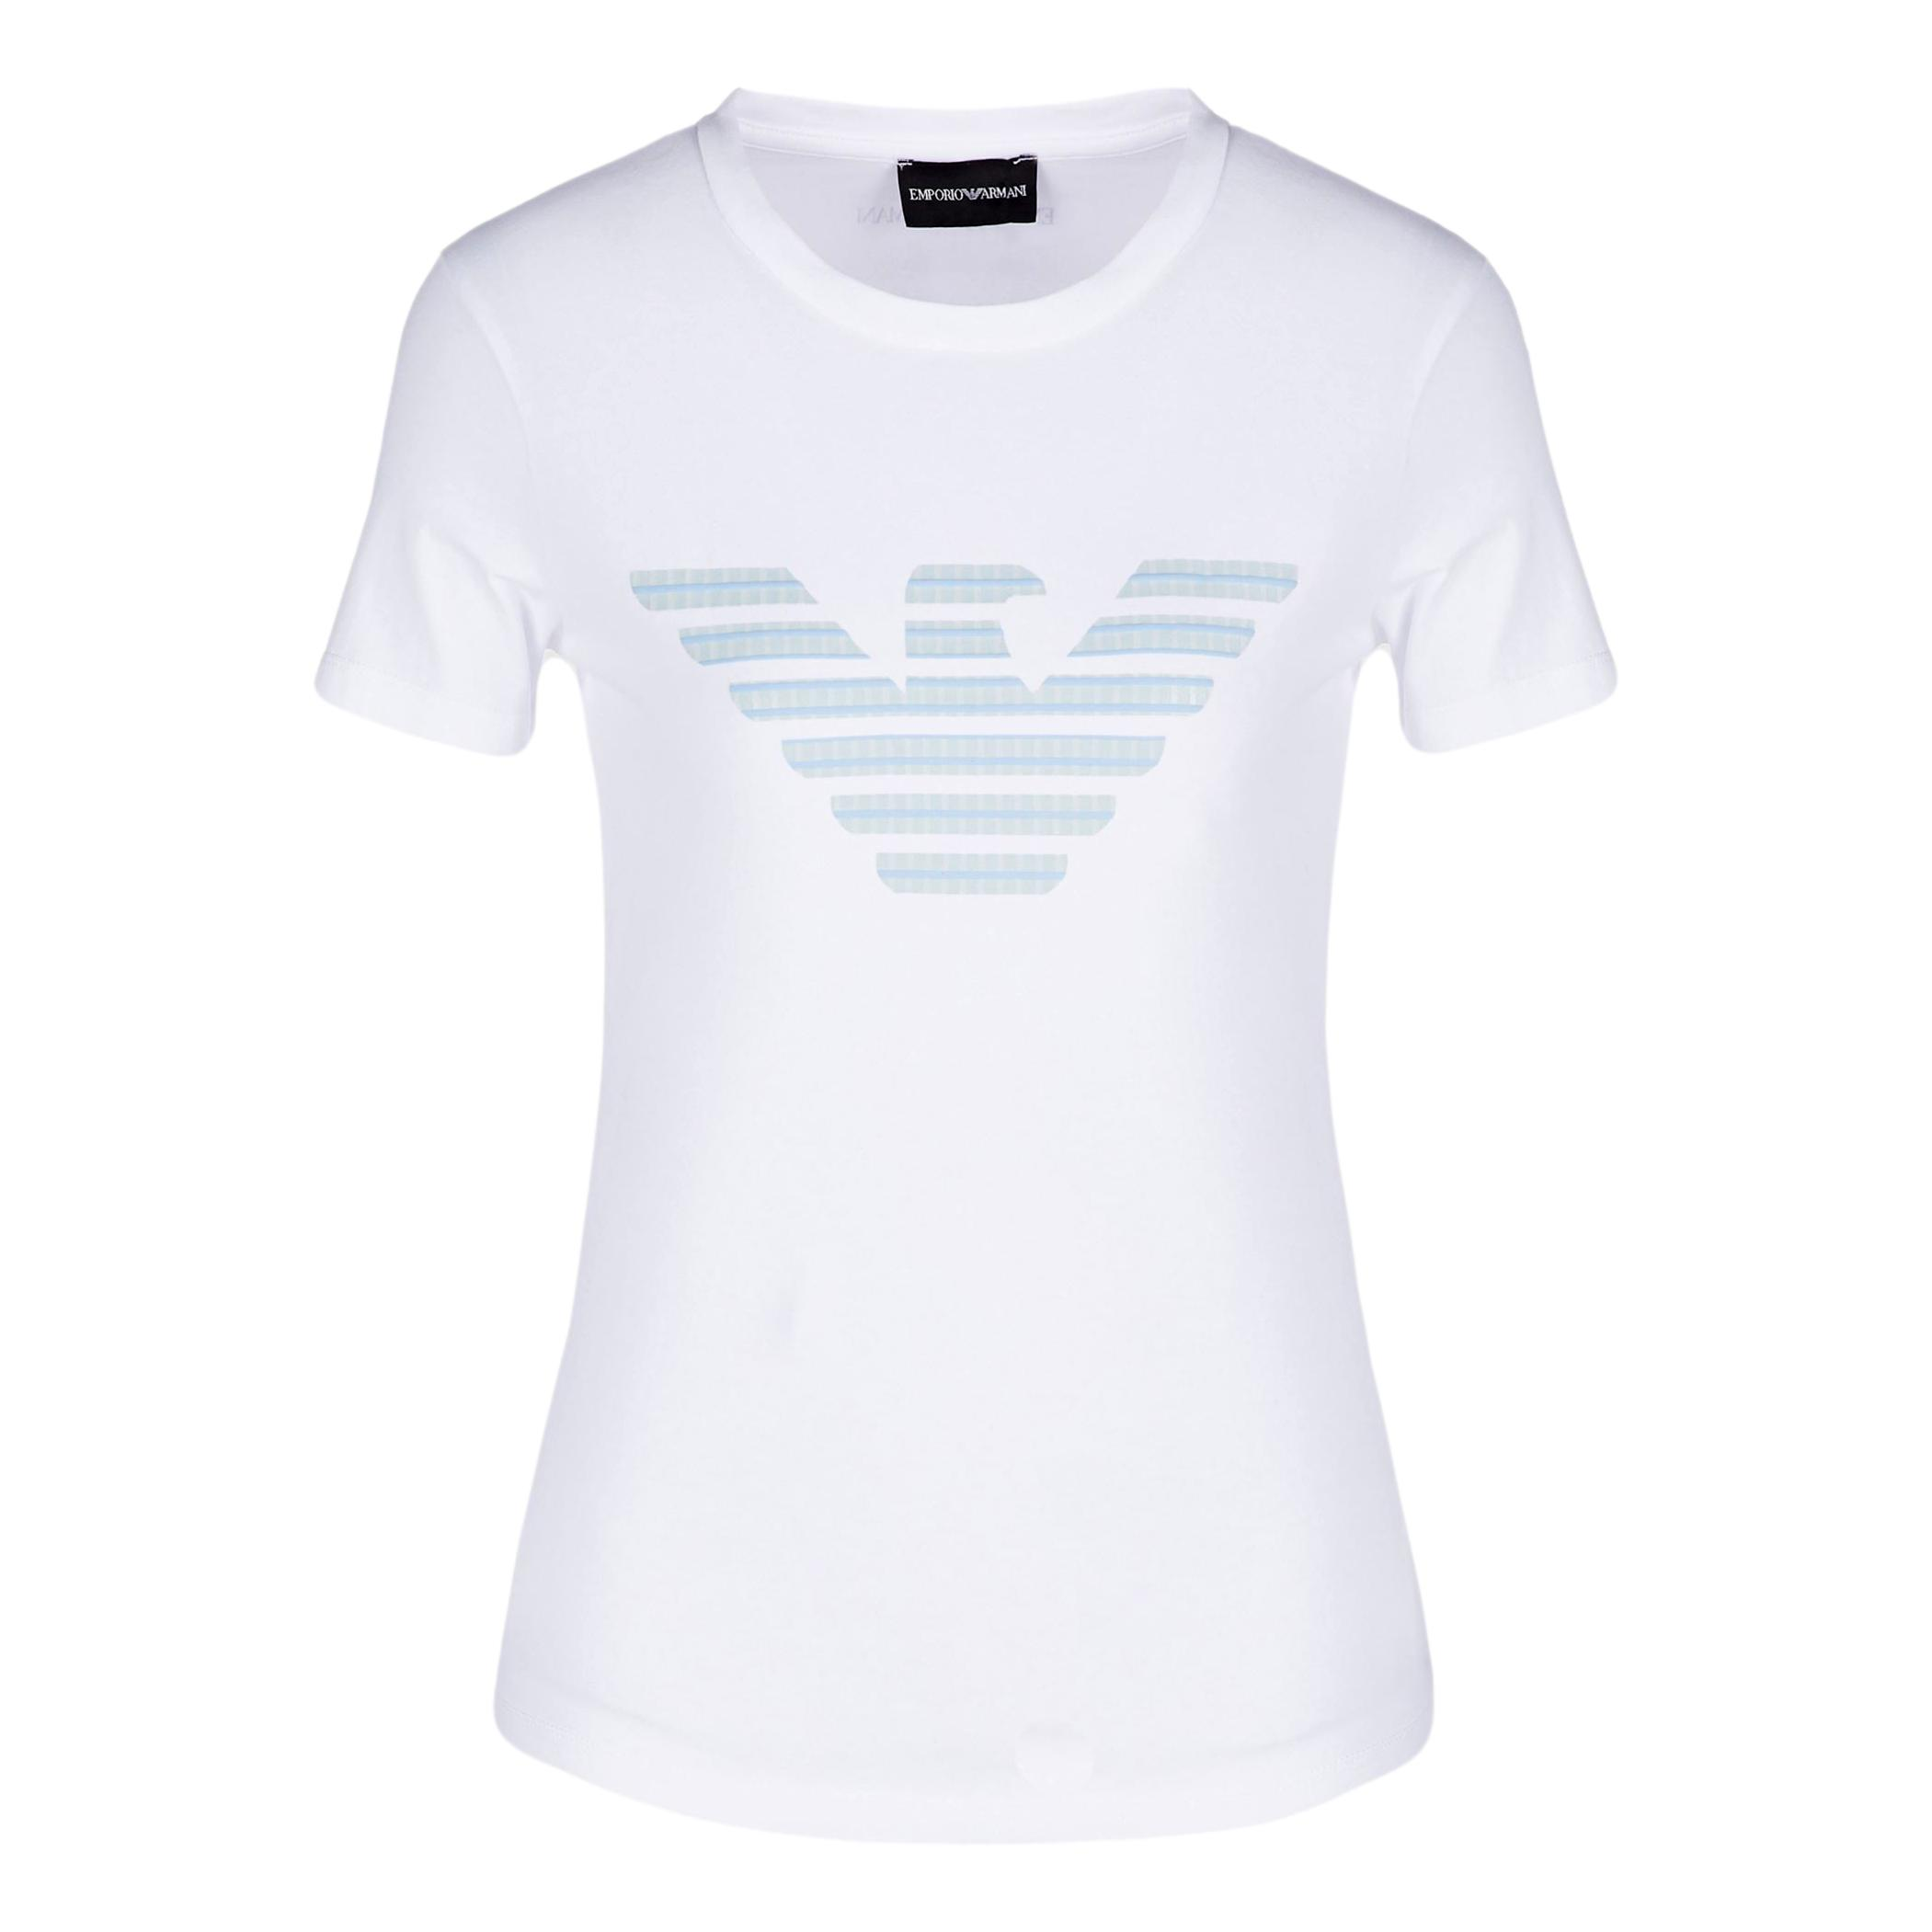 Stretch jersey T-Shirt with fantasy eagle print EMPORIO ARMANI |  | 3K2T7N 2J07Z0100